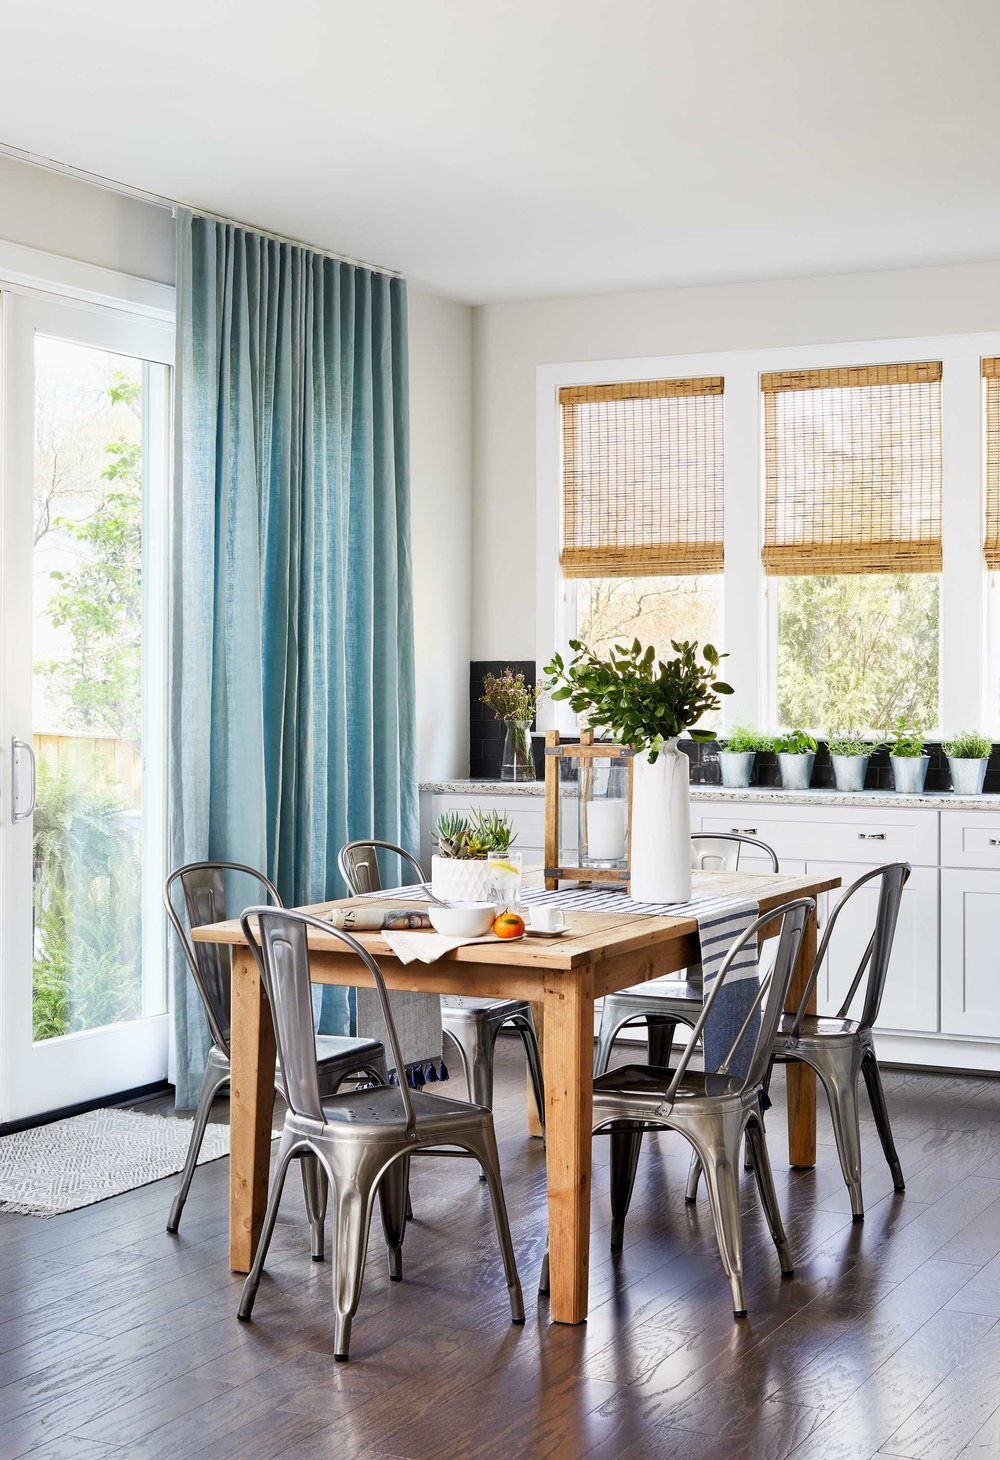 Small wooden breakfast table with metal chairs best of Boston Cambridge DC top-designers Dane Austin Design